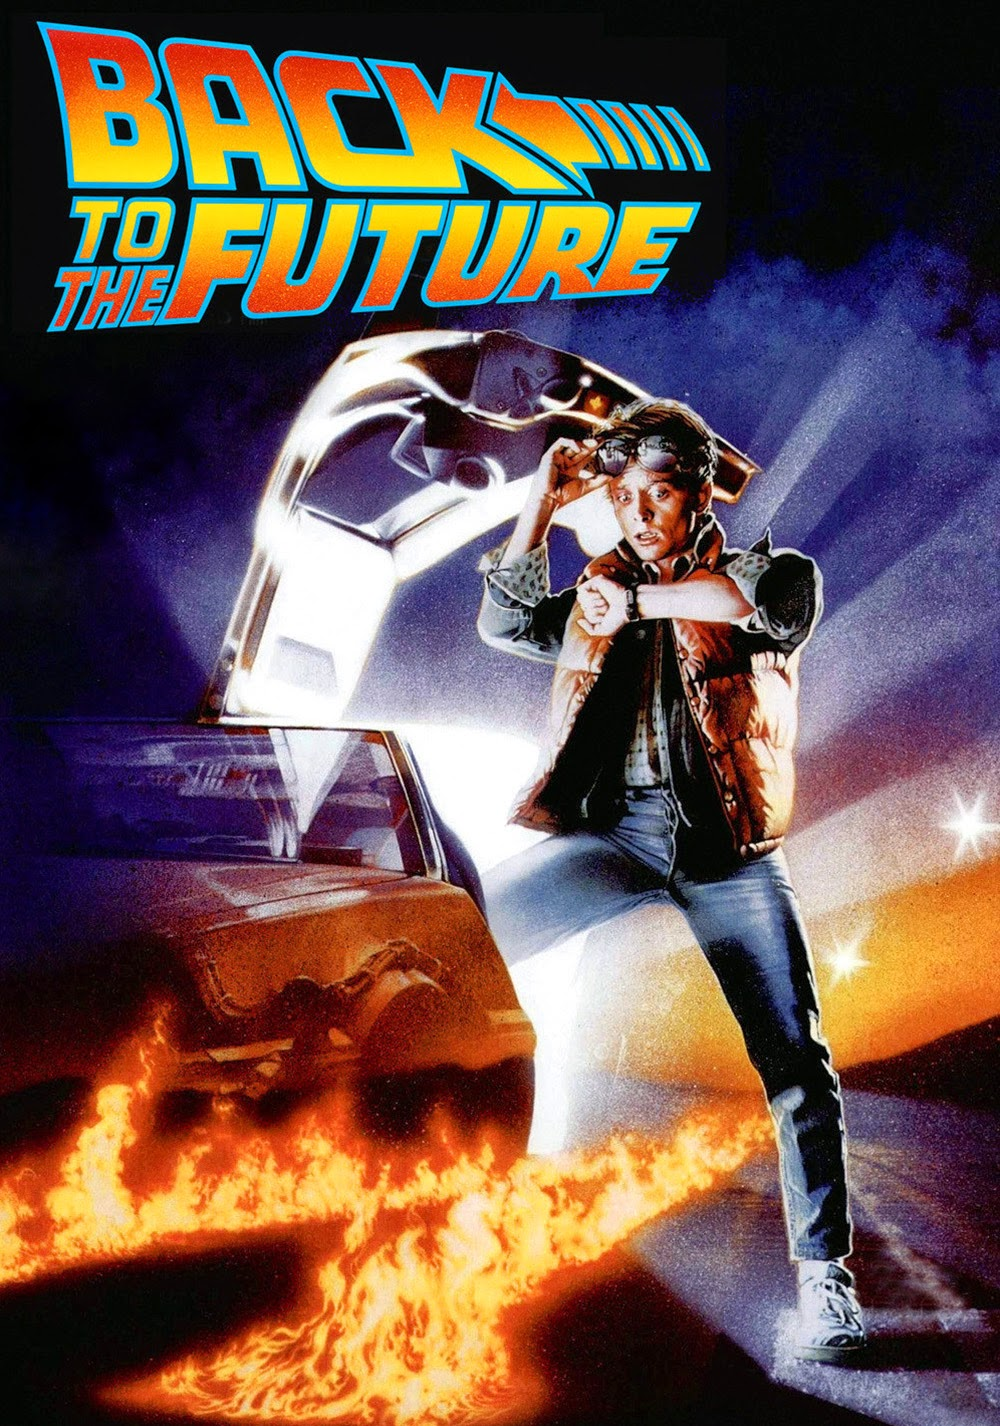 Time travel, Viajes en el tiempo, back to the future, film, película, time line, especial